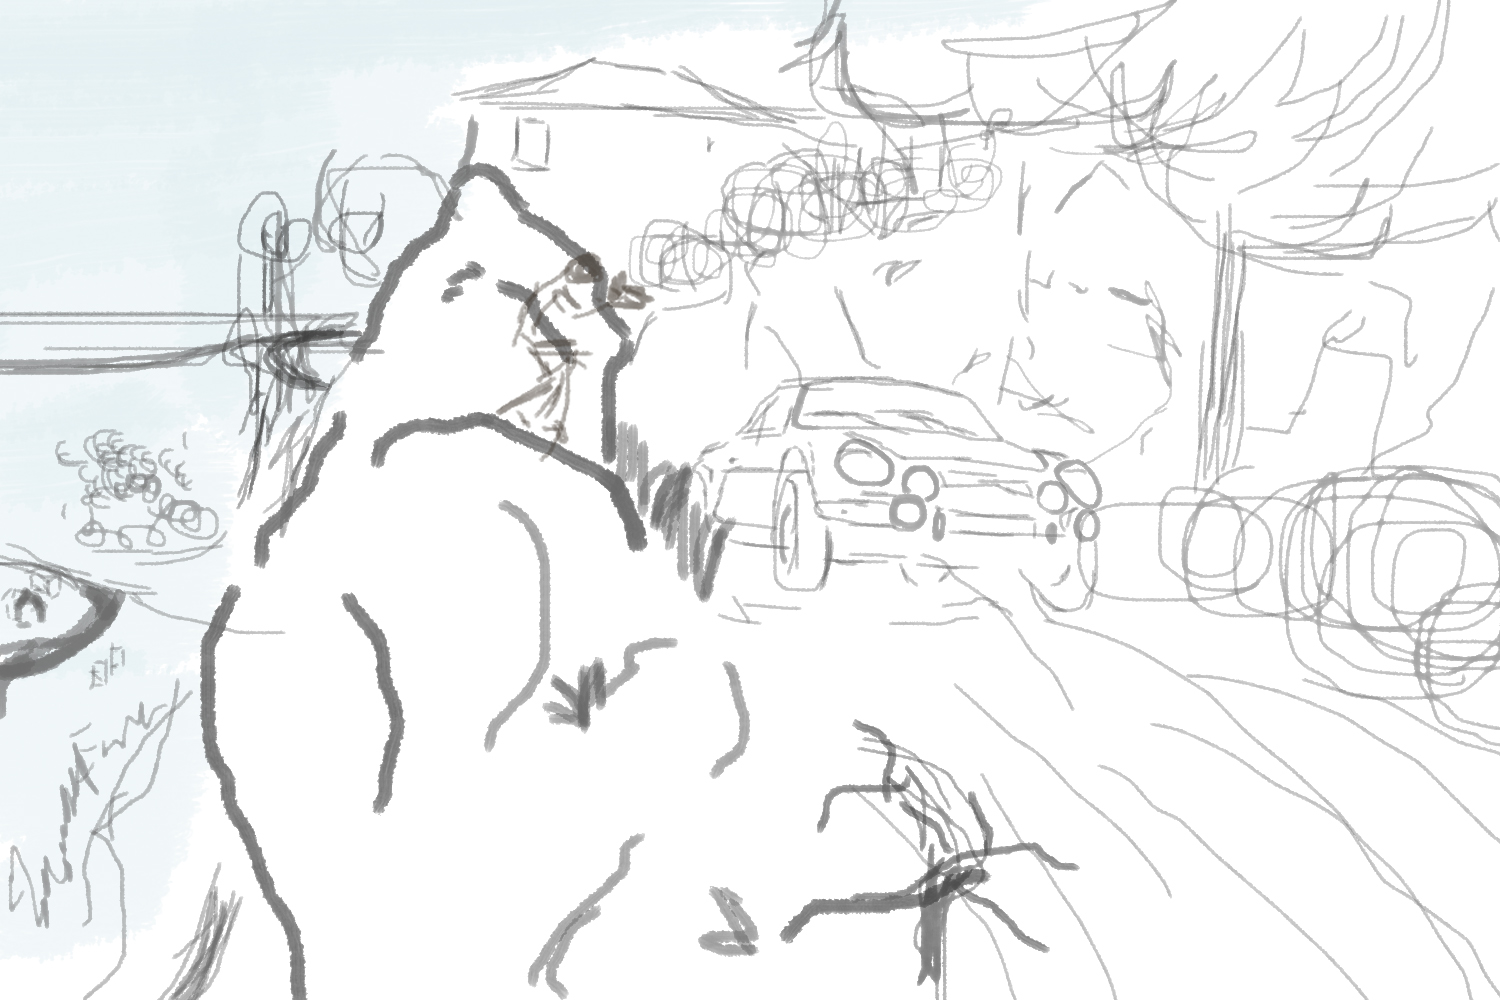 Sketching is the best way to visualize what I want to make